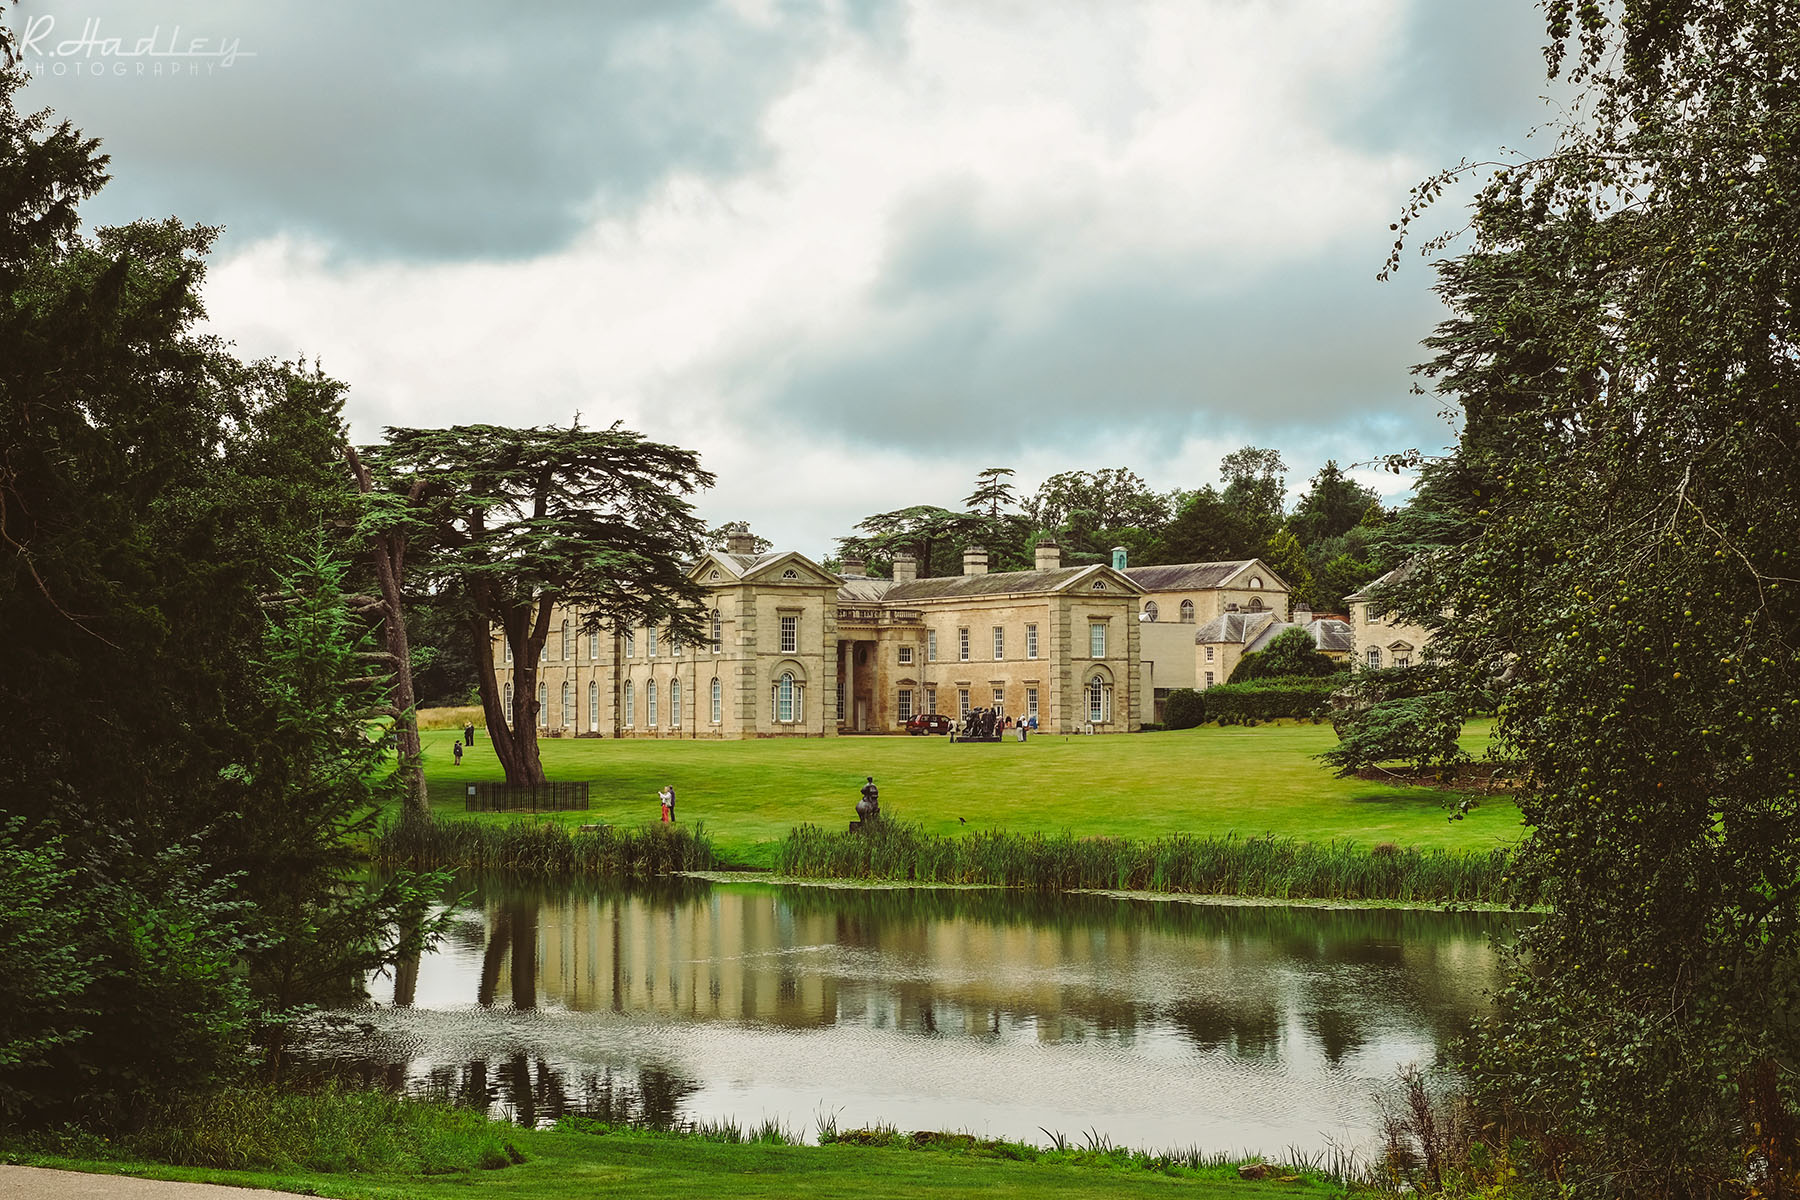 Wedding photographer visits Compton Verney, Warwickshire